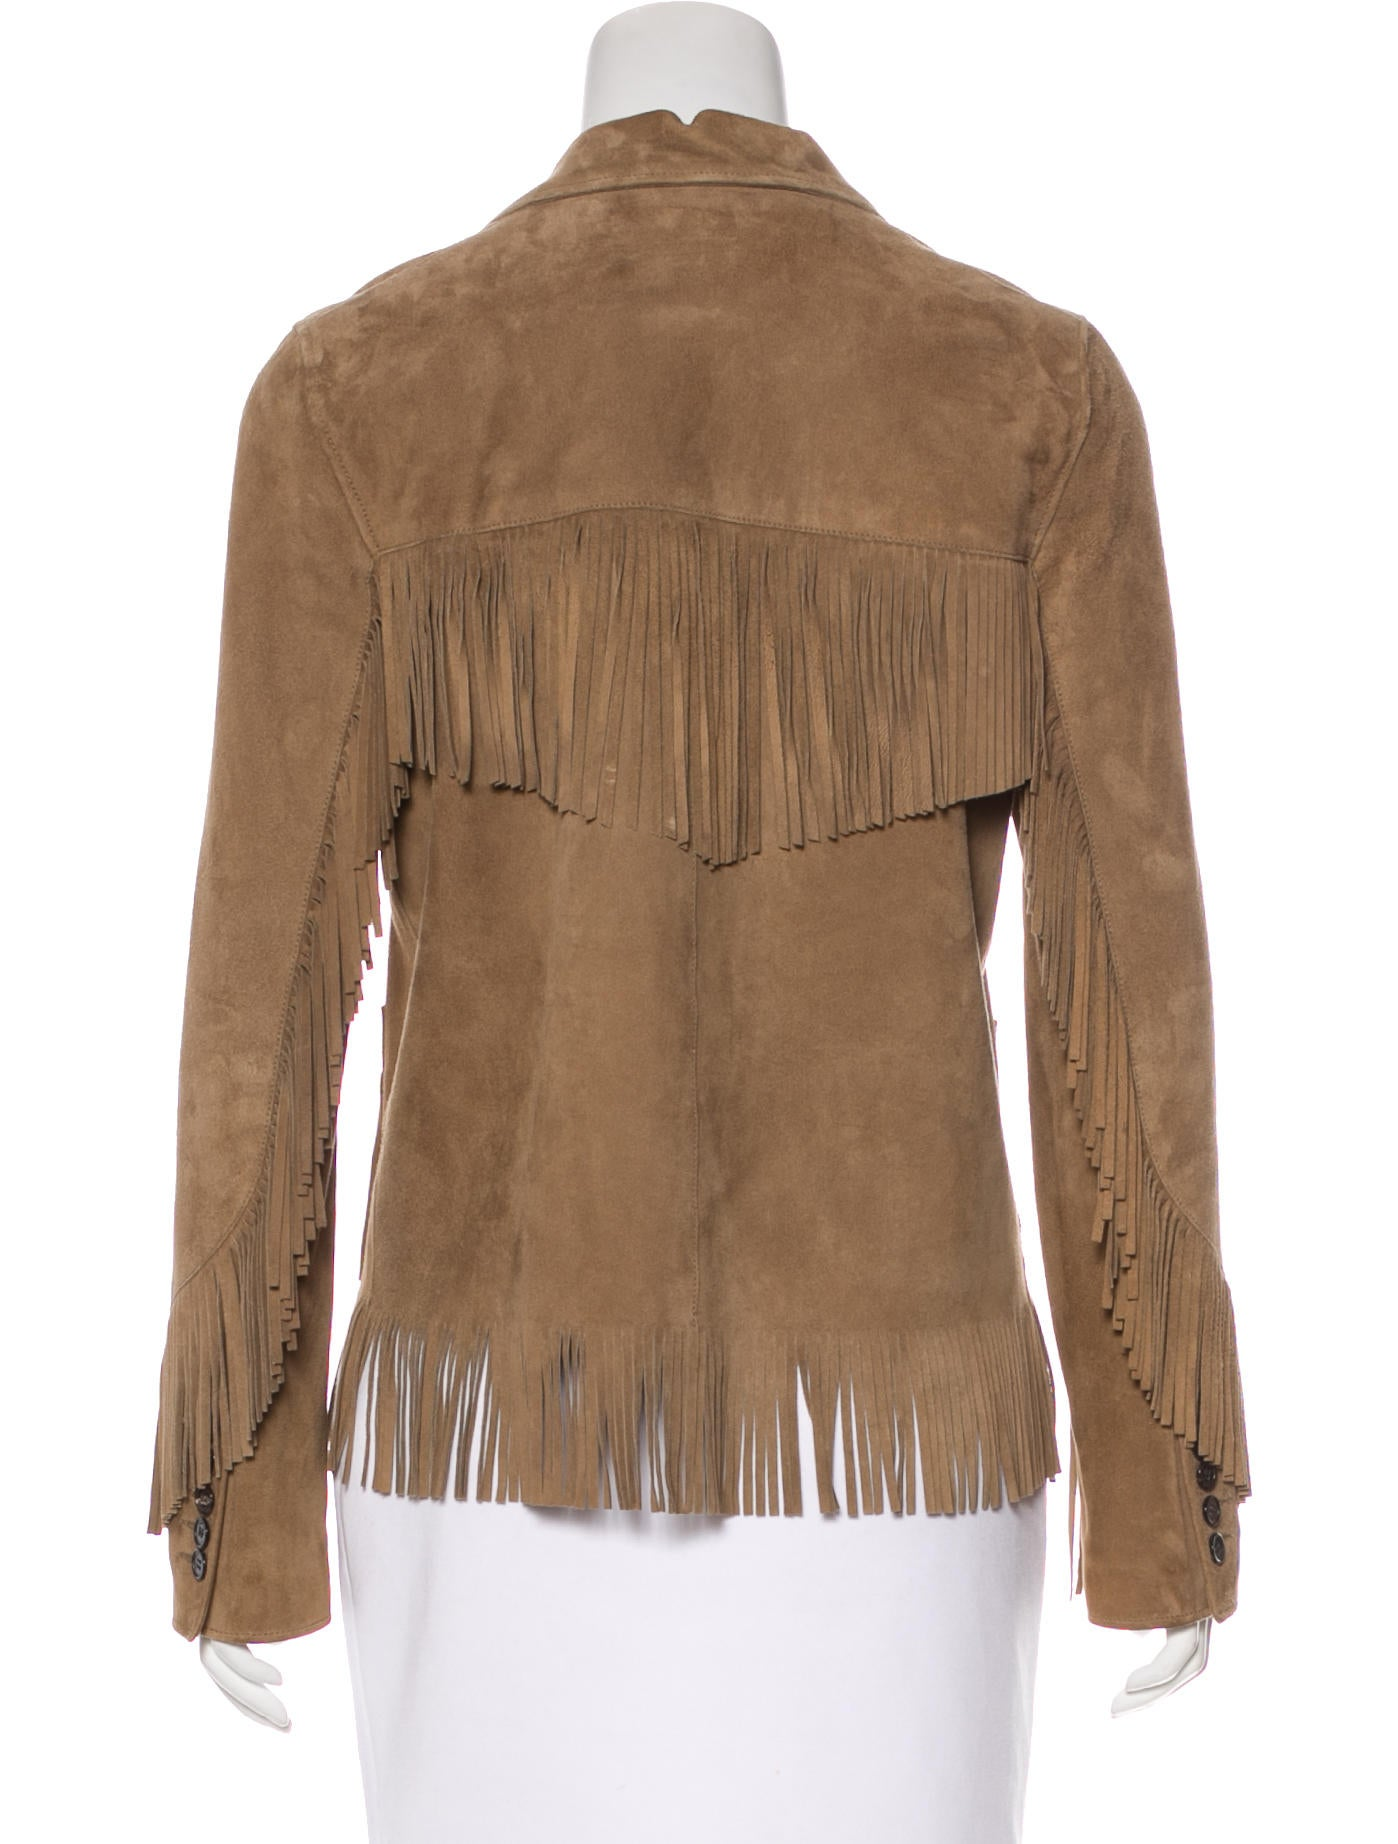 Saint Laurent Suede Fringe Trimmed Jacket Clothing